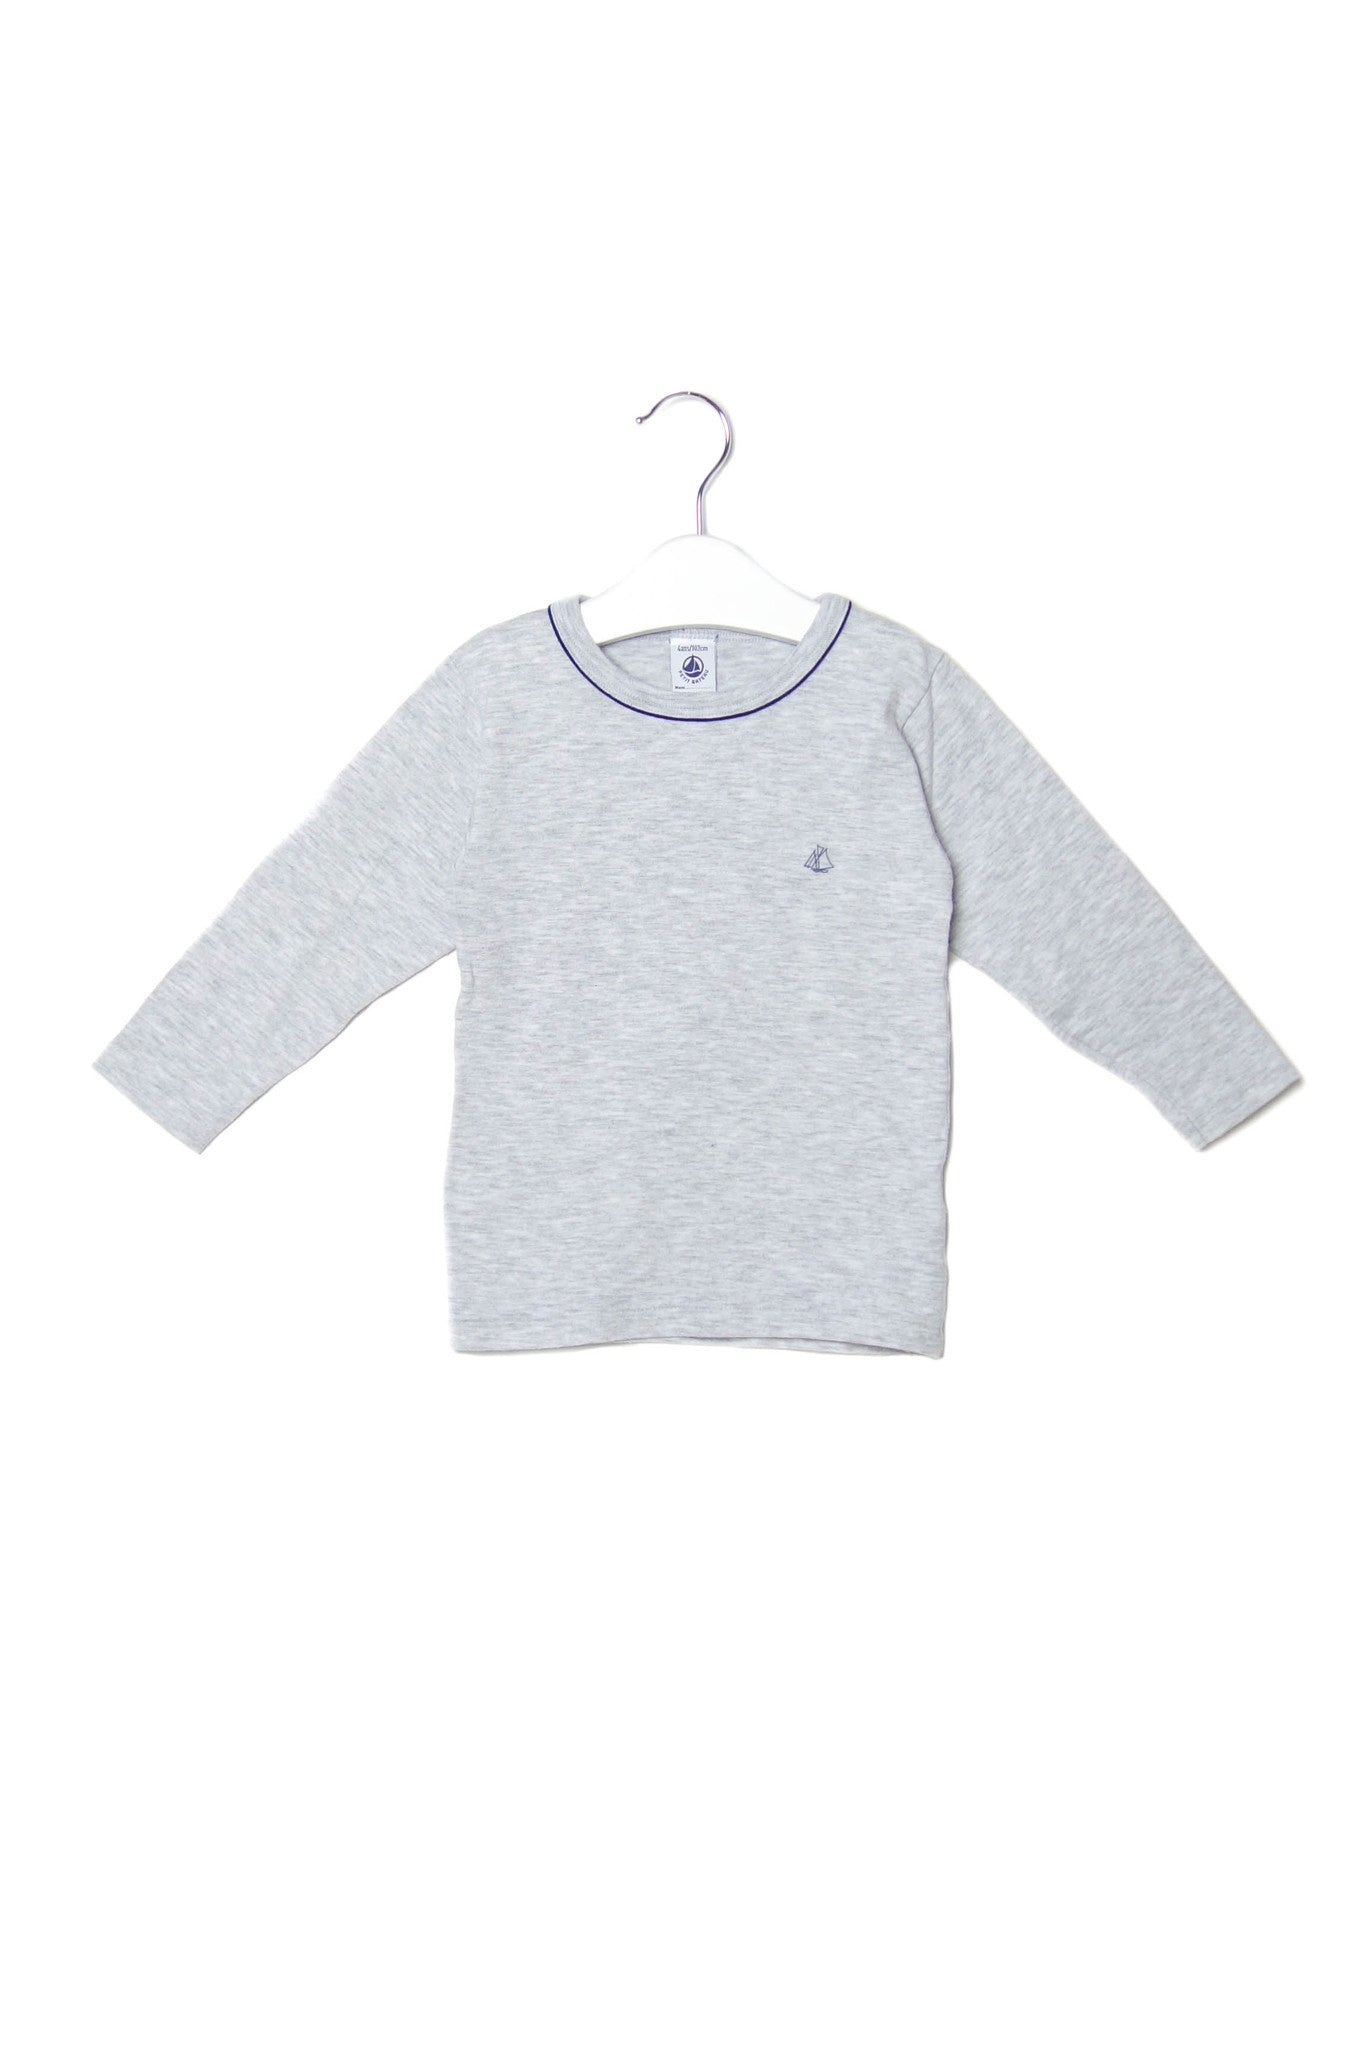 10002158 Petit Bateau Kids~Top 4T at Retykle